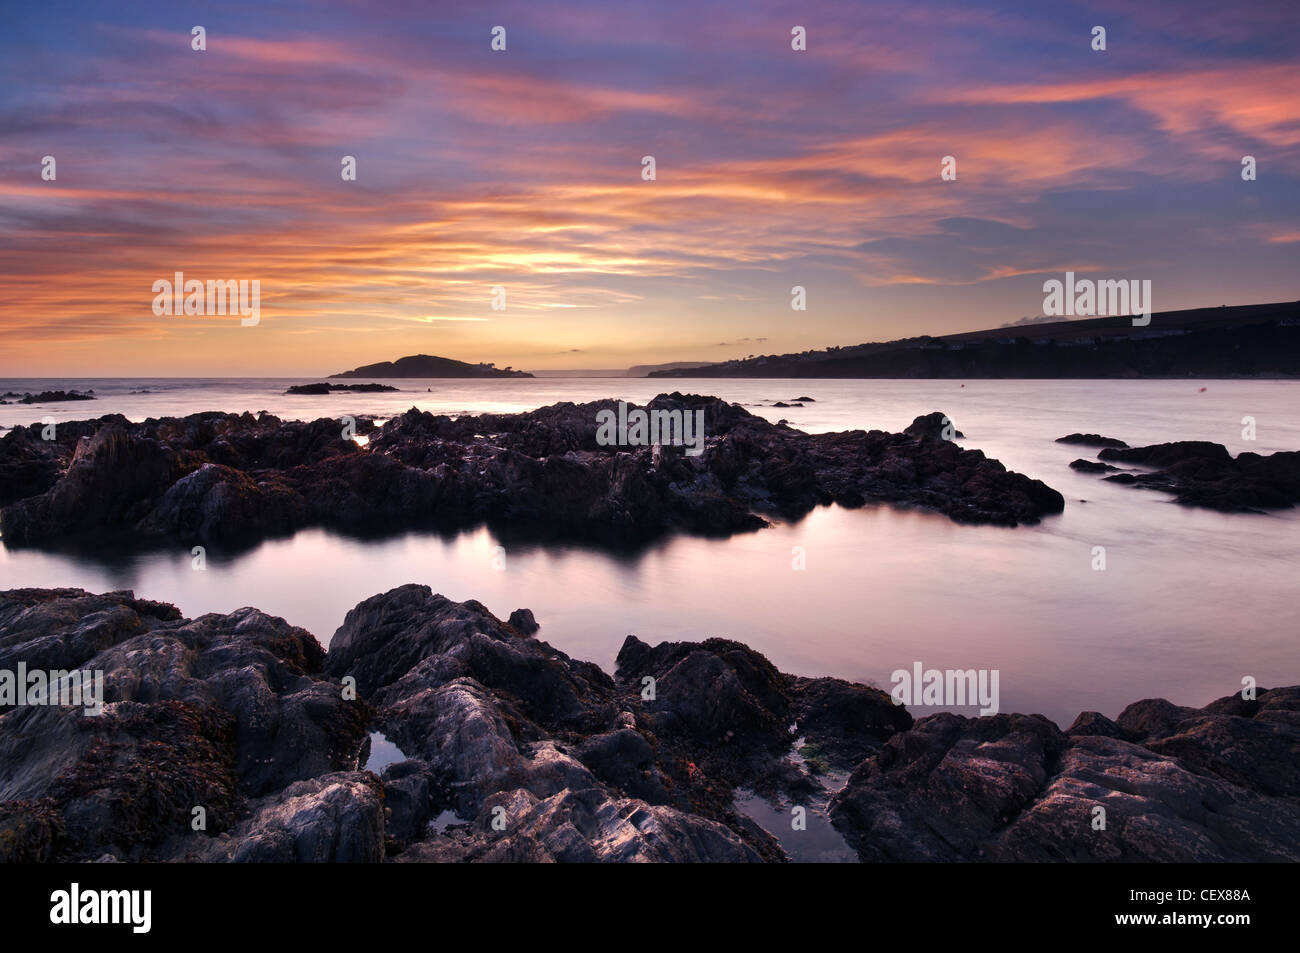 View from Bantham Beach to Burgh Island at sunset, Devon, England. - Stock Image